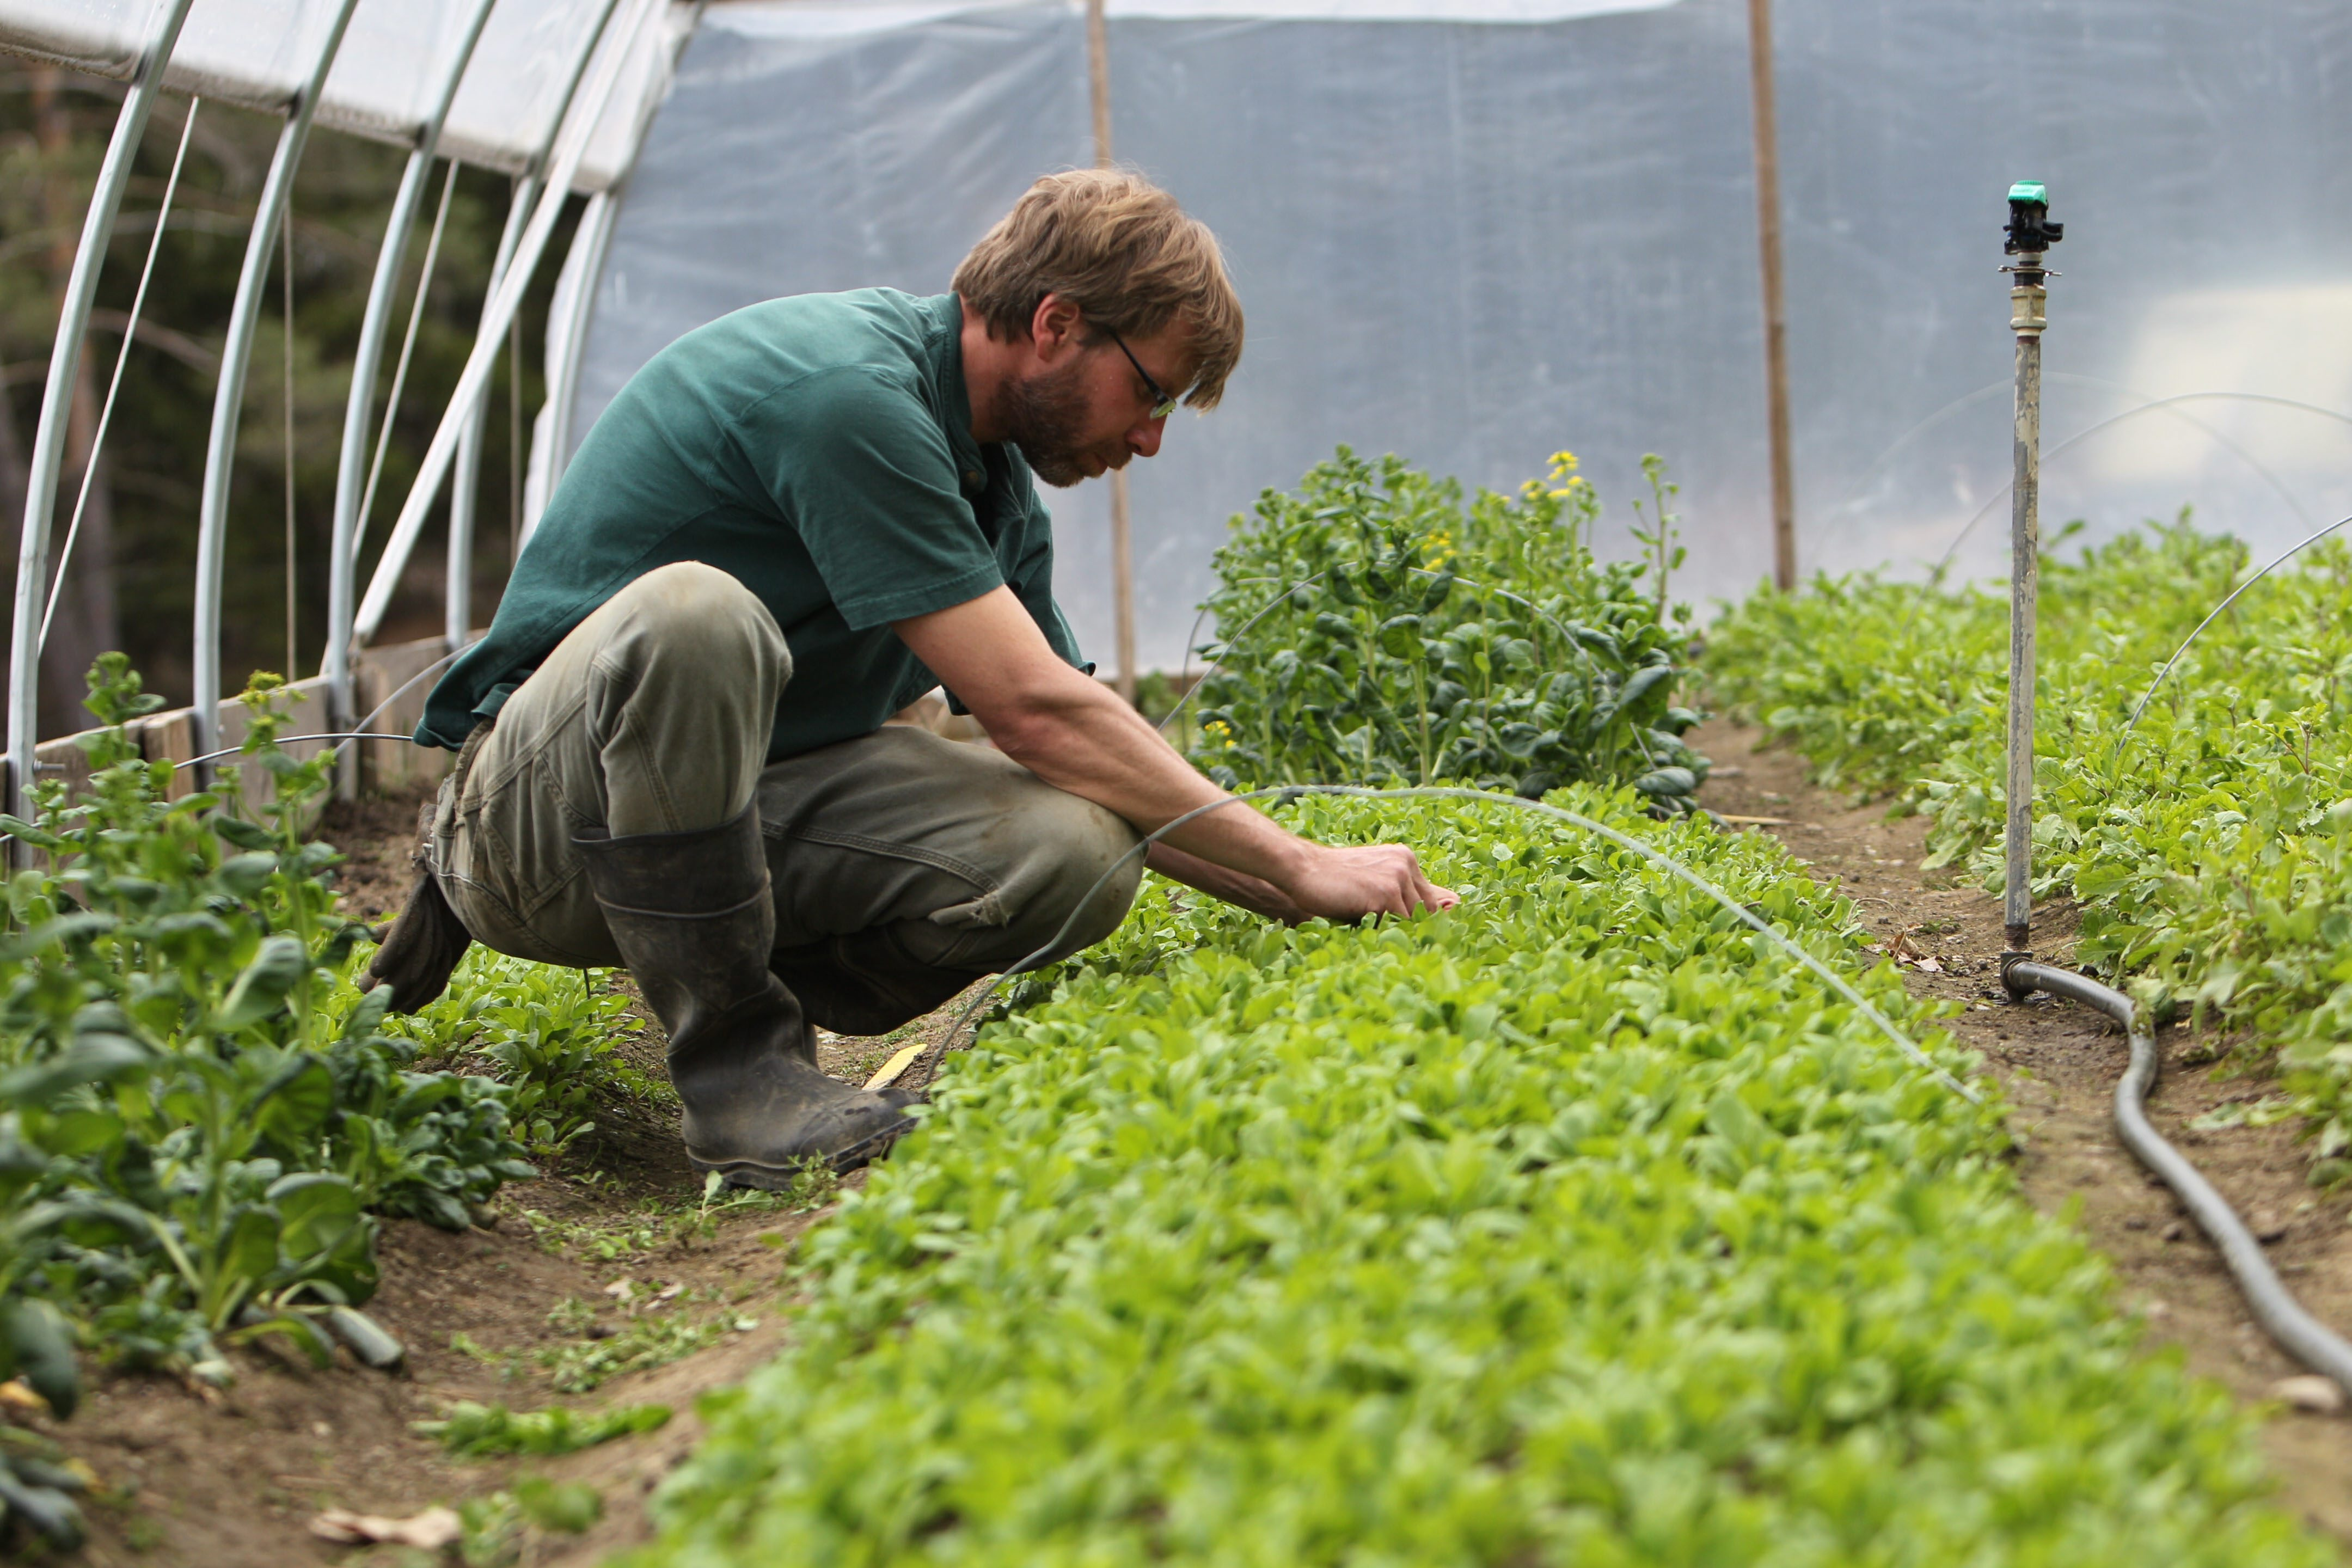 Daniel Roelofs, owner of Arden Farm in East Aurora tends to young arugula plants in one of his high tunnels. A high tunnel is not heated and the plants are in the ground rather than in pots. (Sharon Cantillon/Buffalo News)